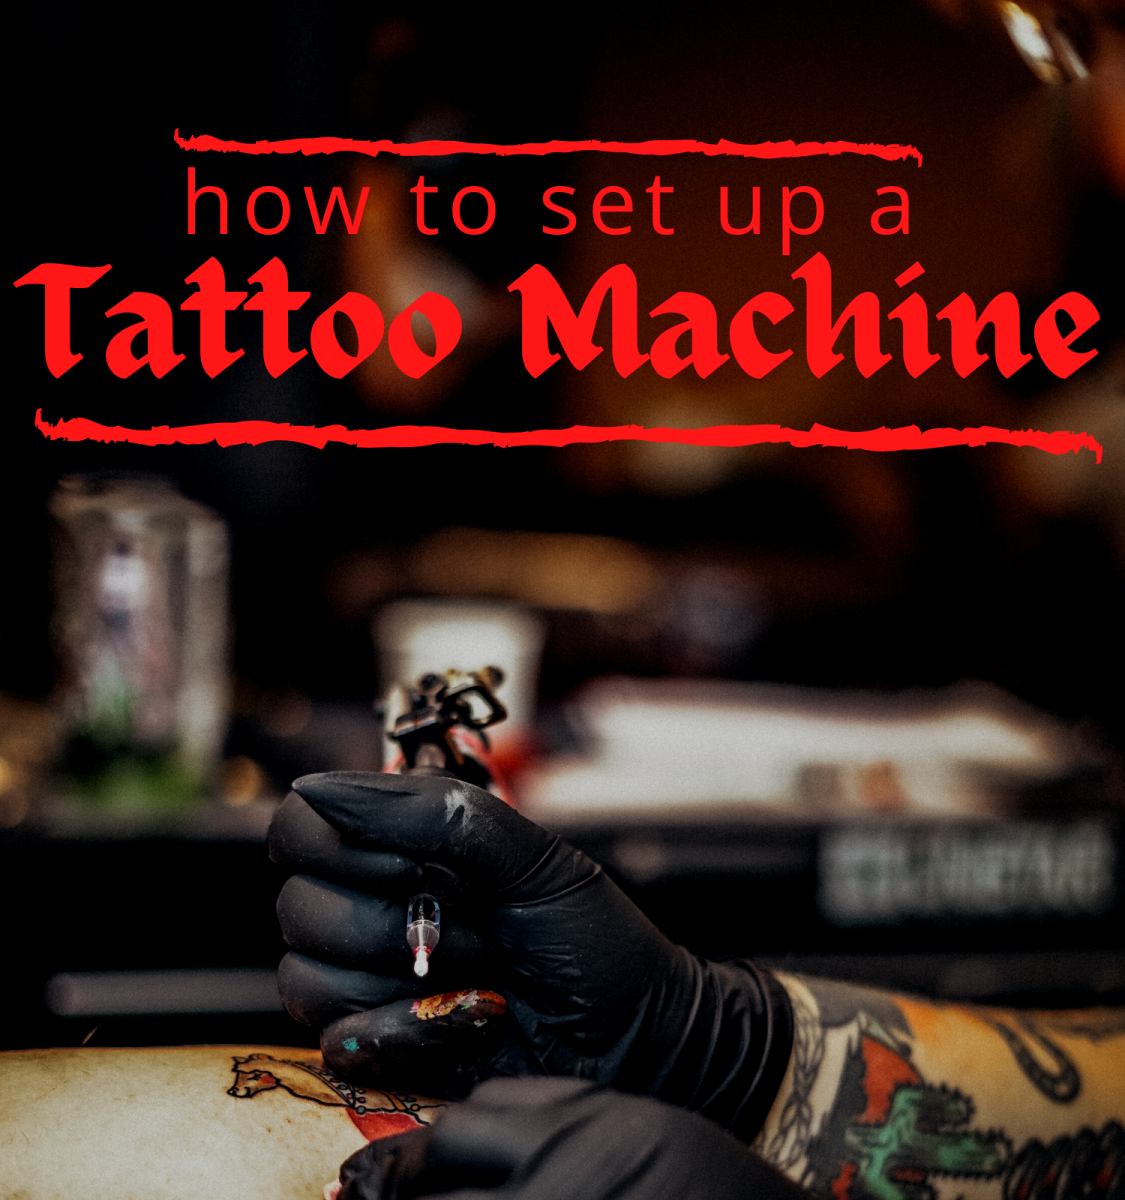 Tutorial for Setting Up a Tattoo Machine